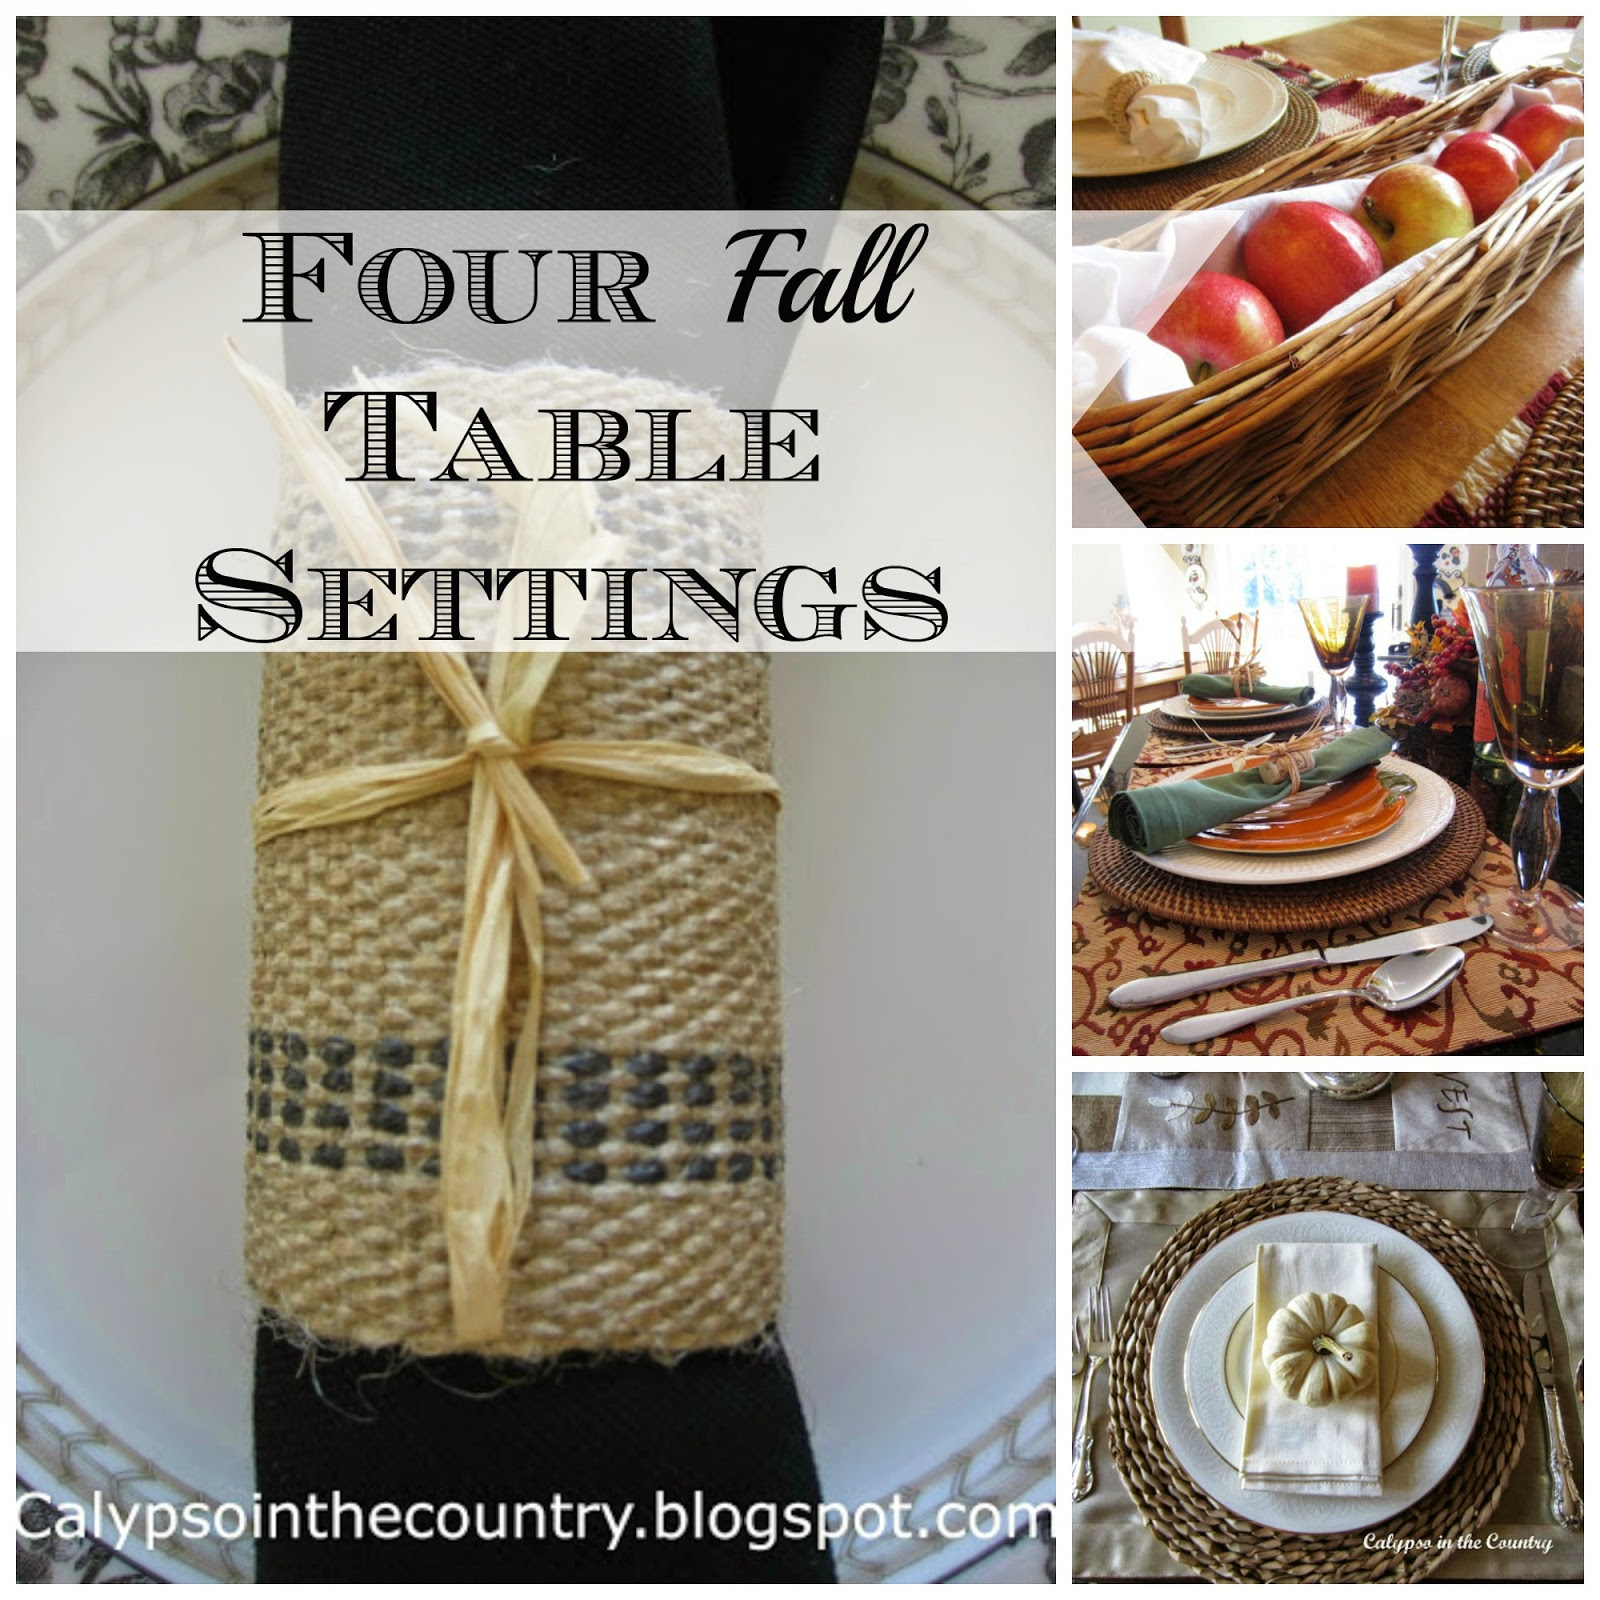 Four Fall Table Settings - 4 Different looks to decorate your table for fall